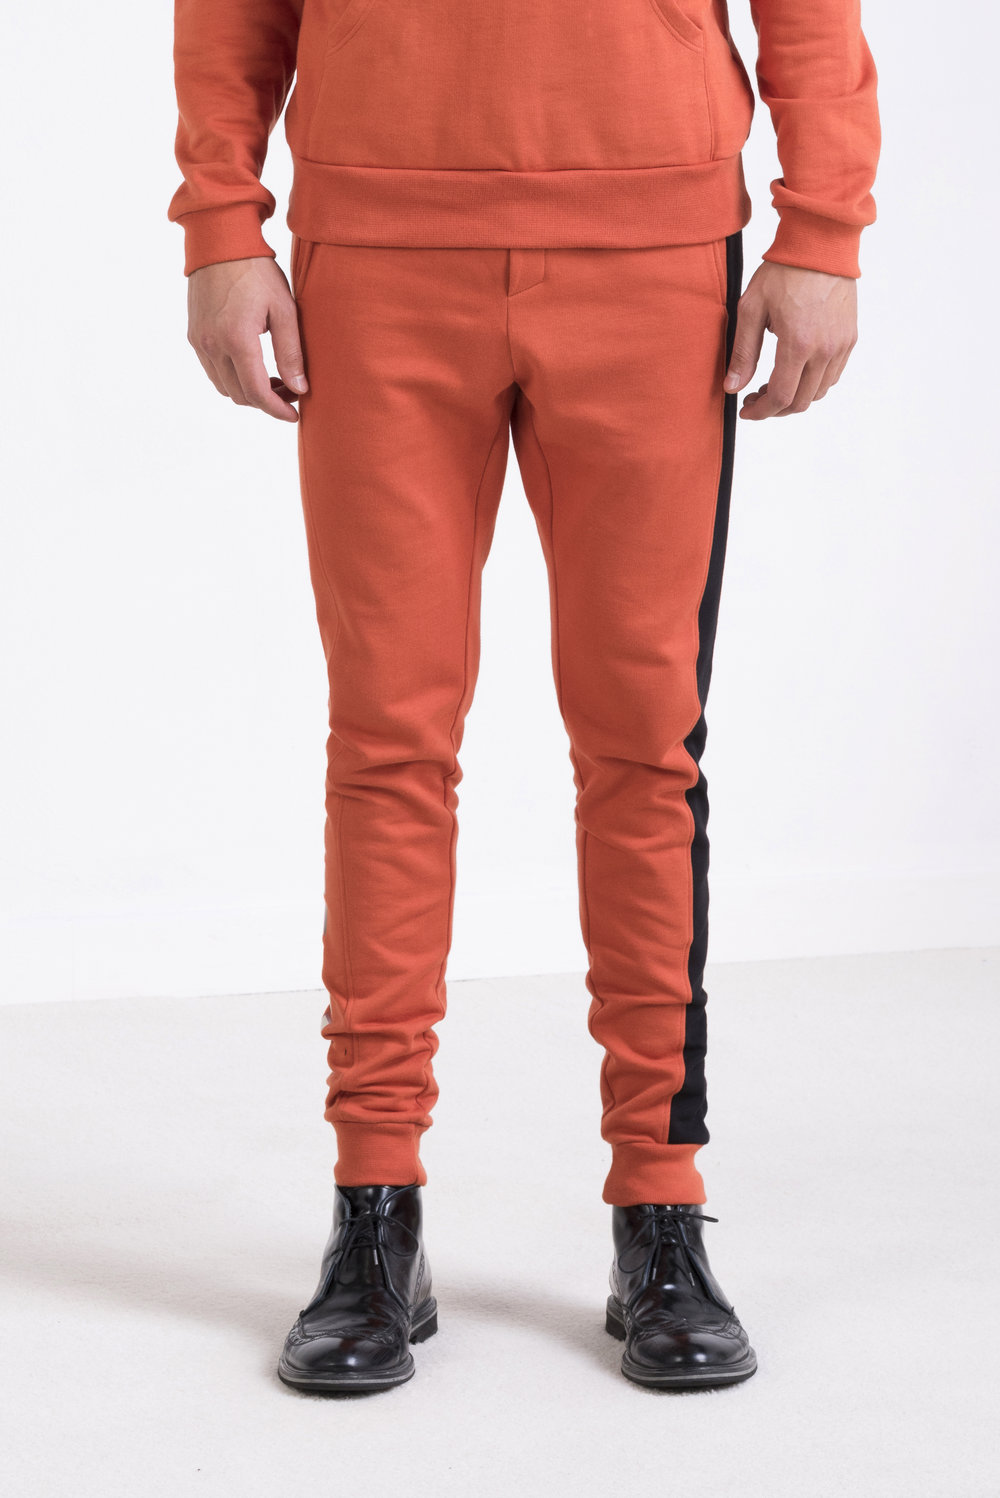 oneculture Alphabet sweatpants orange 2.jpg